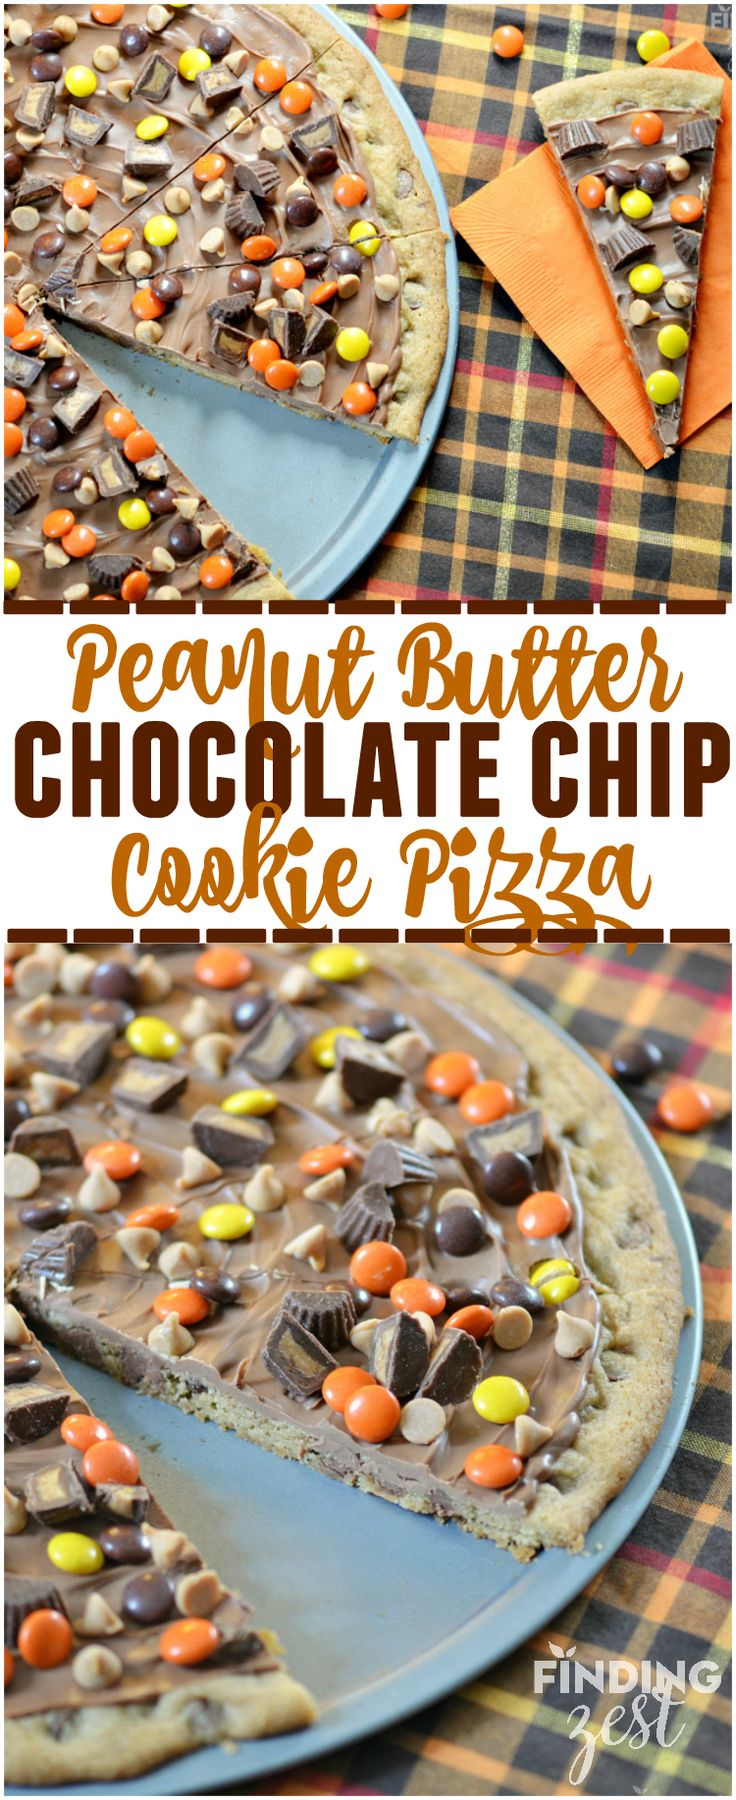 This Peanut Butter Chocolate Cookie Pizza features a chewy chocolate chip cookie base and is topped with peanut butter candies and chocolate! It is sure to impress a crowd!